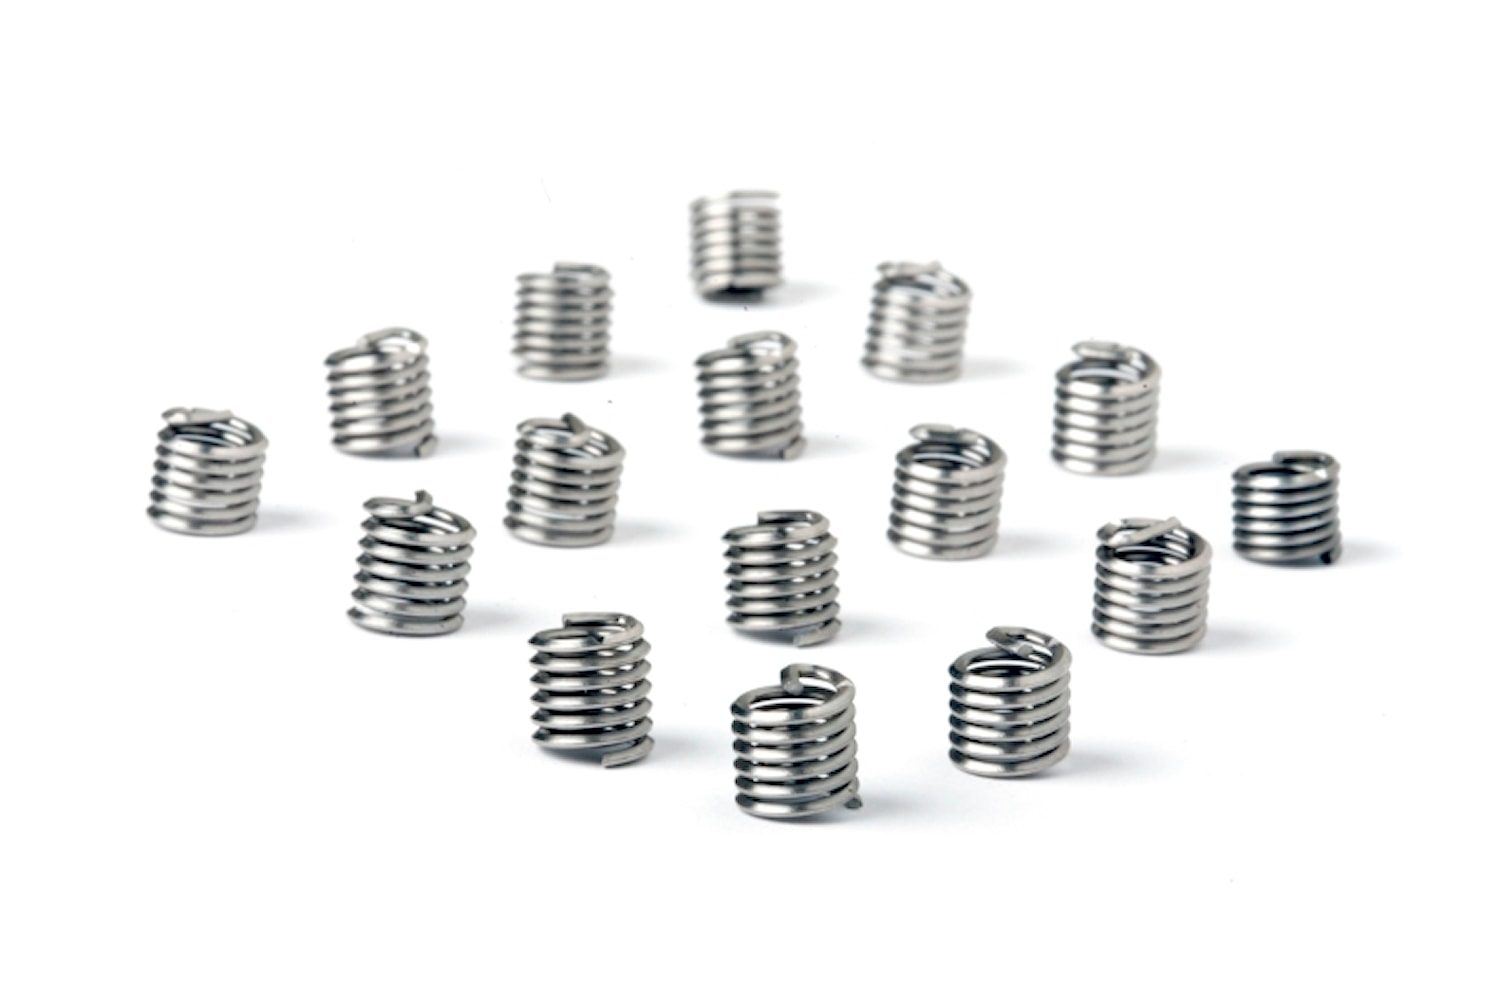 Heli-Coil inserts